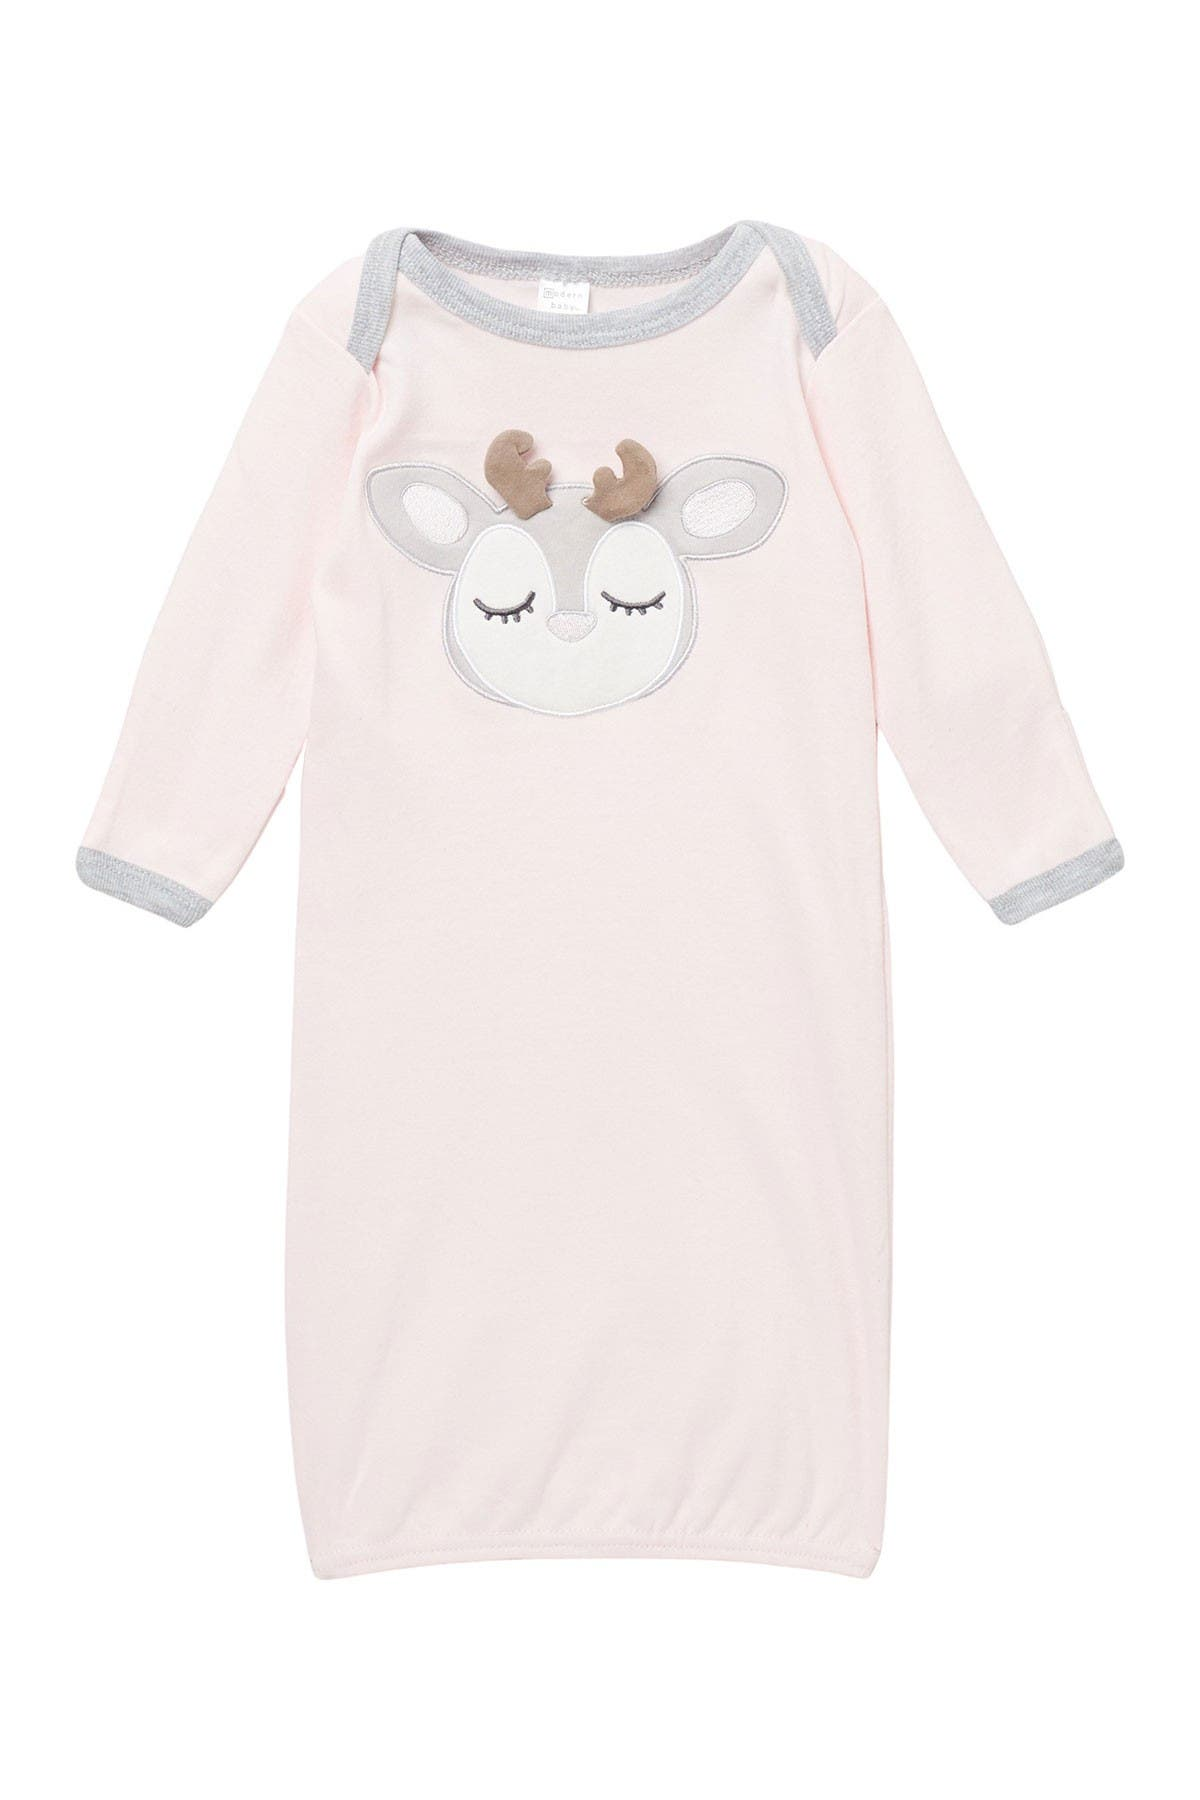 Image of Modern Baby Reindeer Long Sleeve Gown